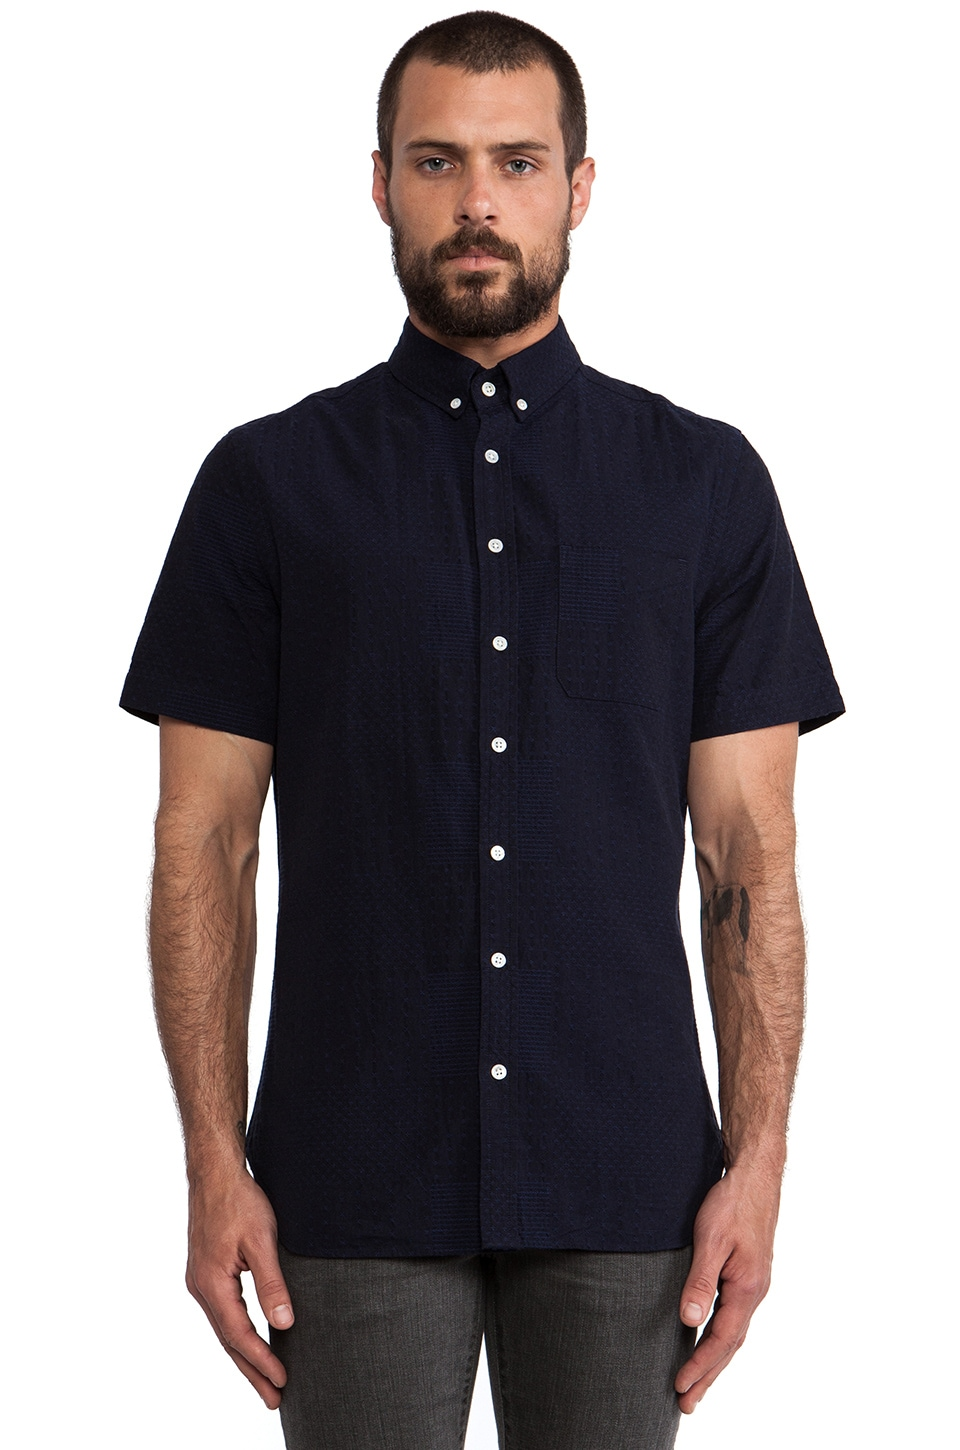 wings + horns Sashiko Button Down Shirt in Indigo Blue